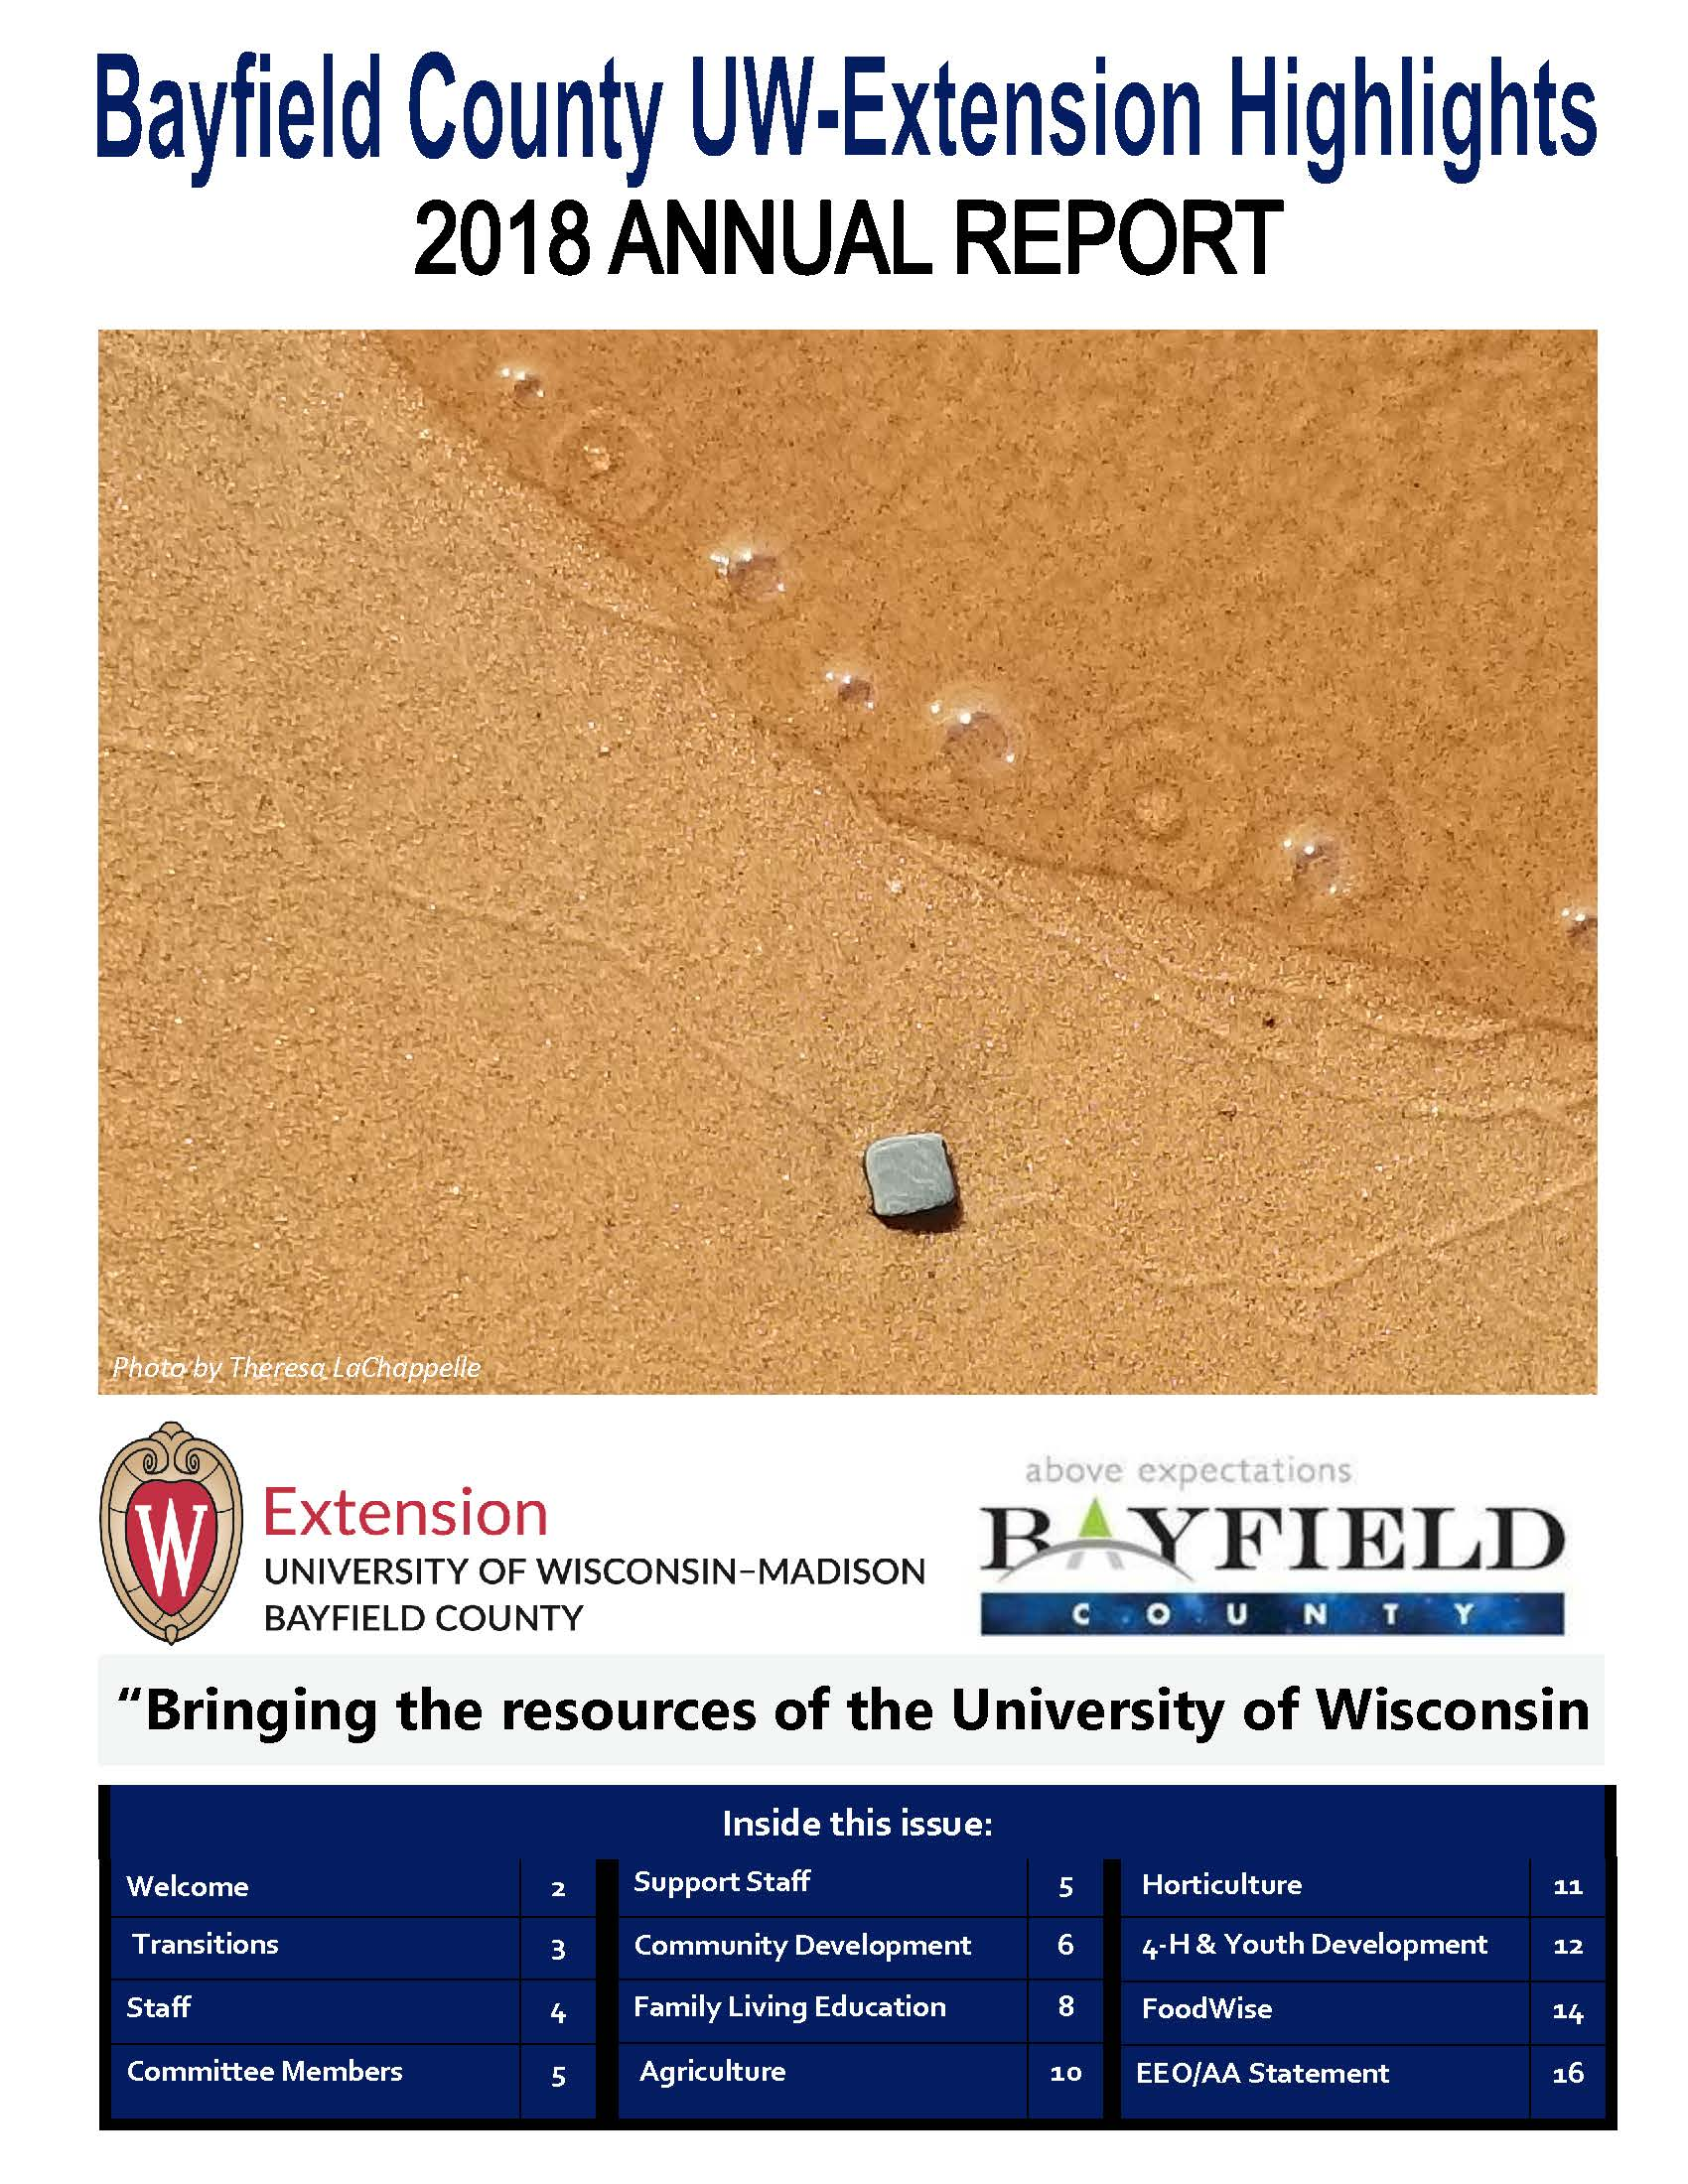 2018 Bayfield County Extension Highlights Annual Report Cover page-square rock on beach